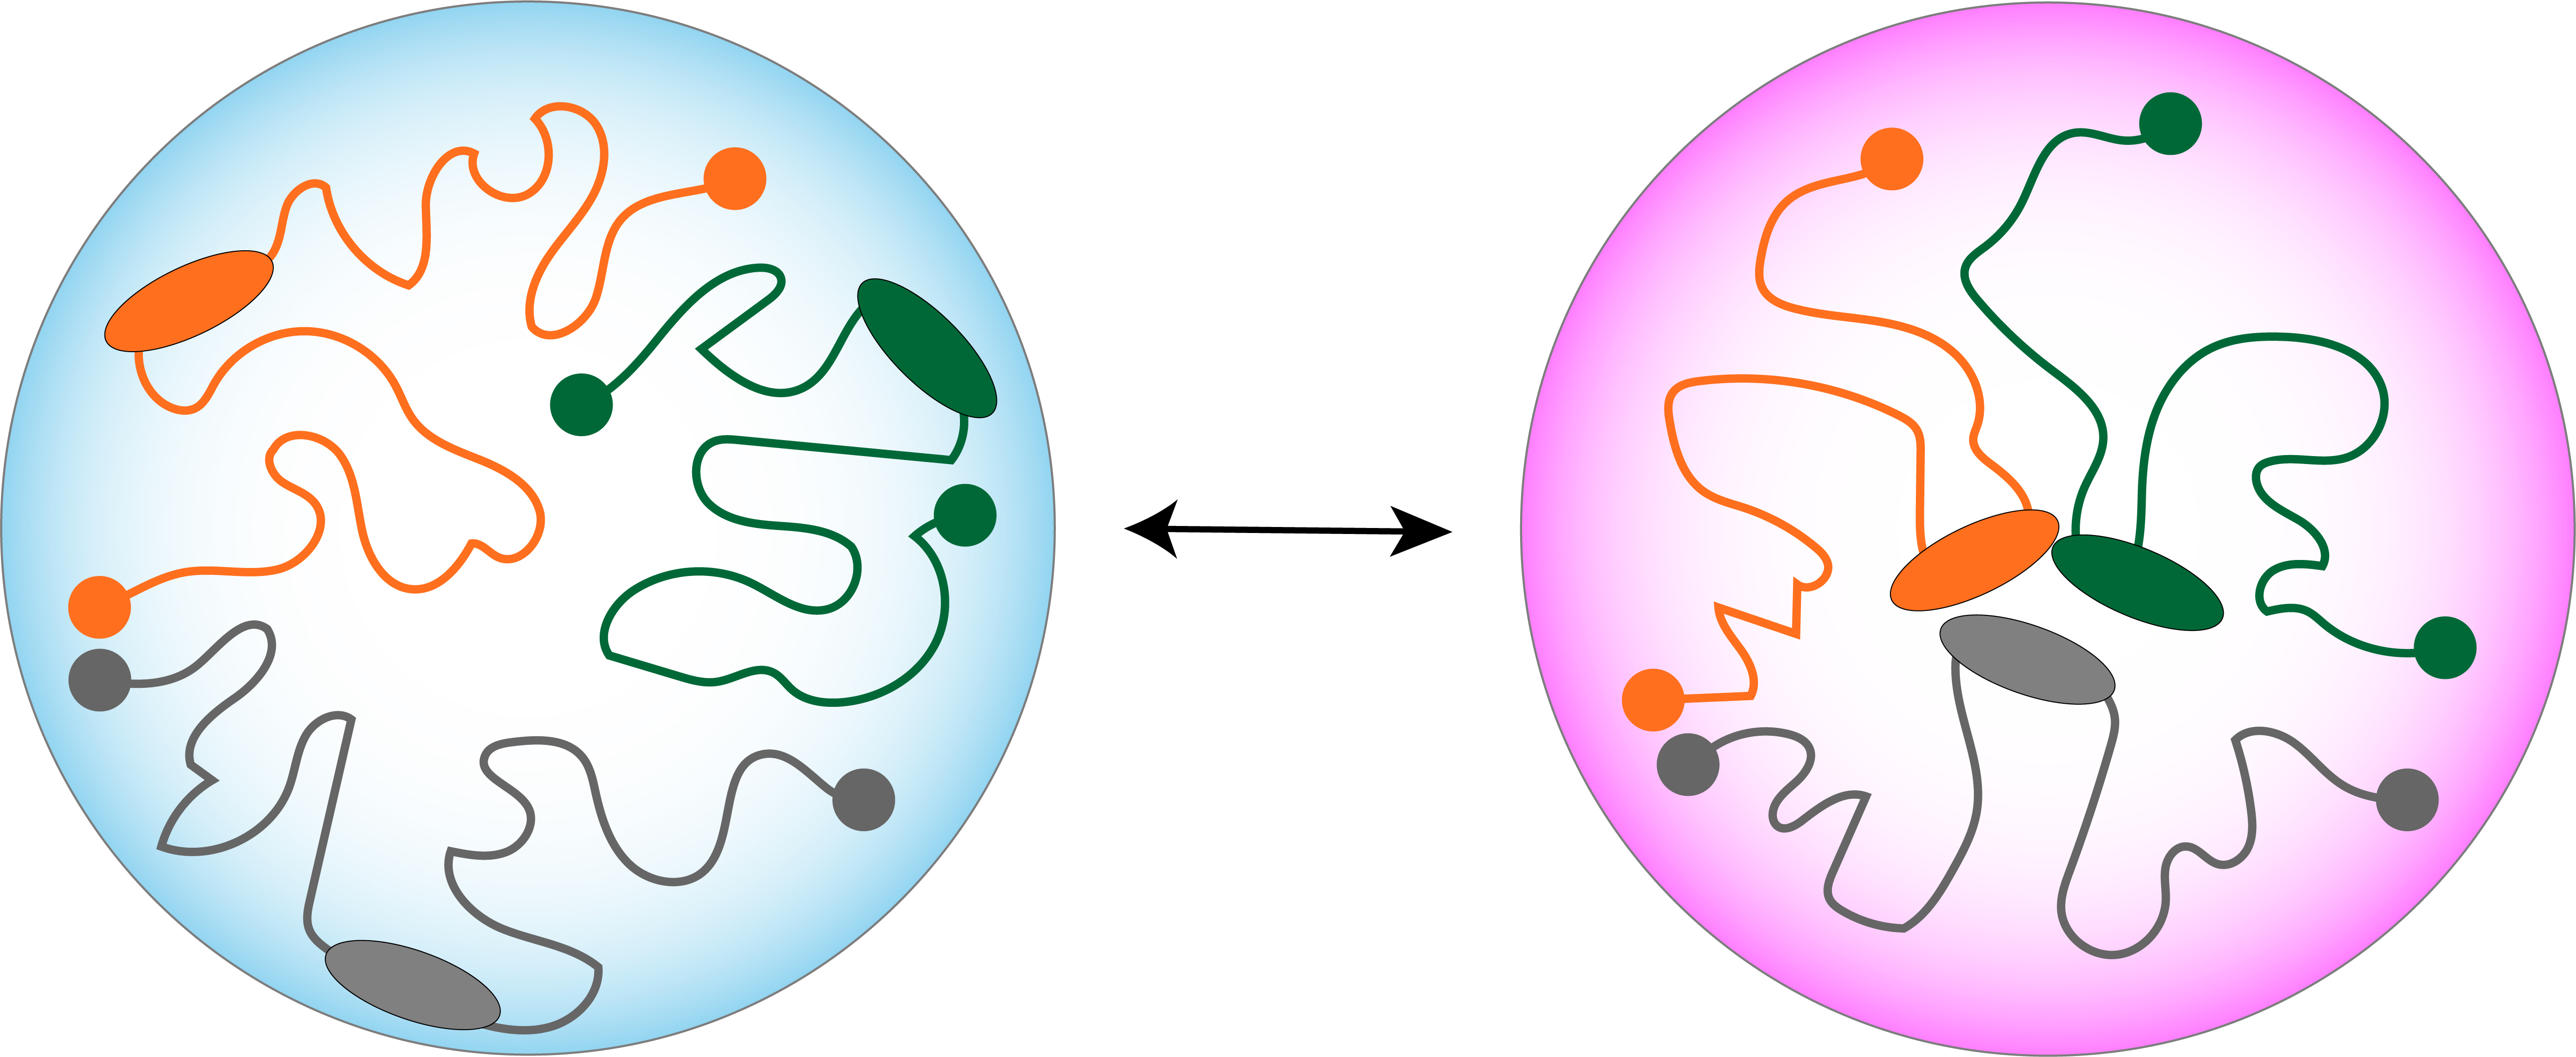 Image of two cell conditions showing how nuclear DNA can rearrange